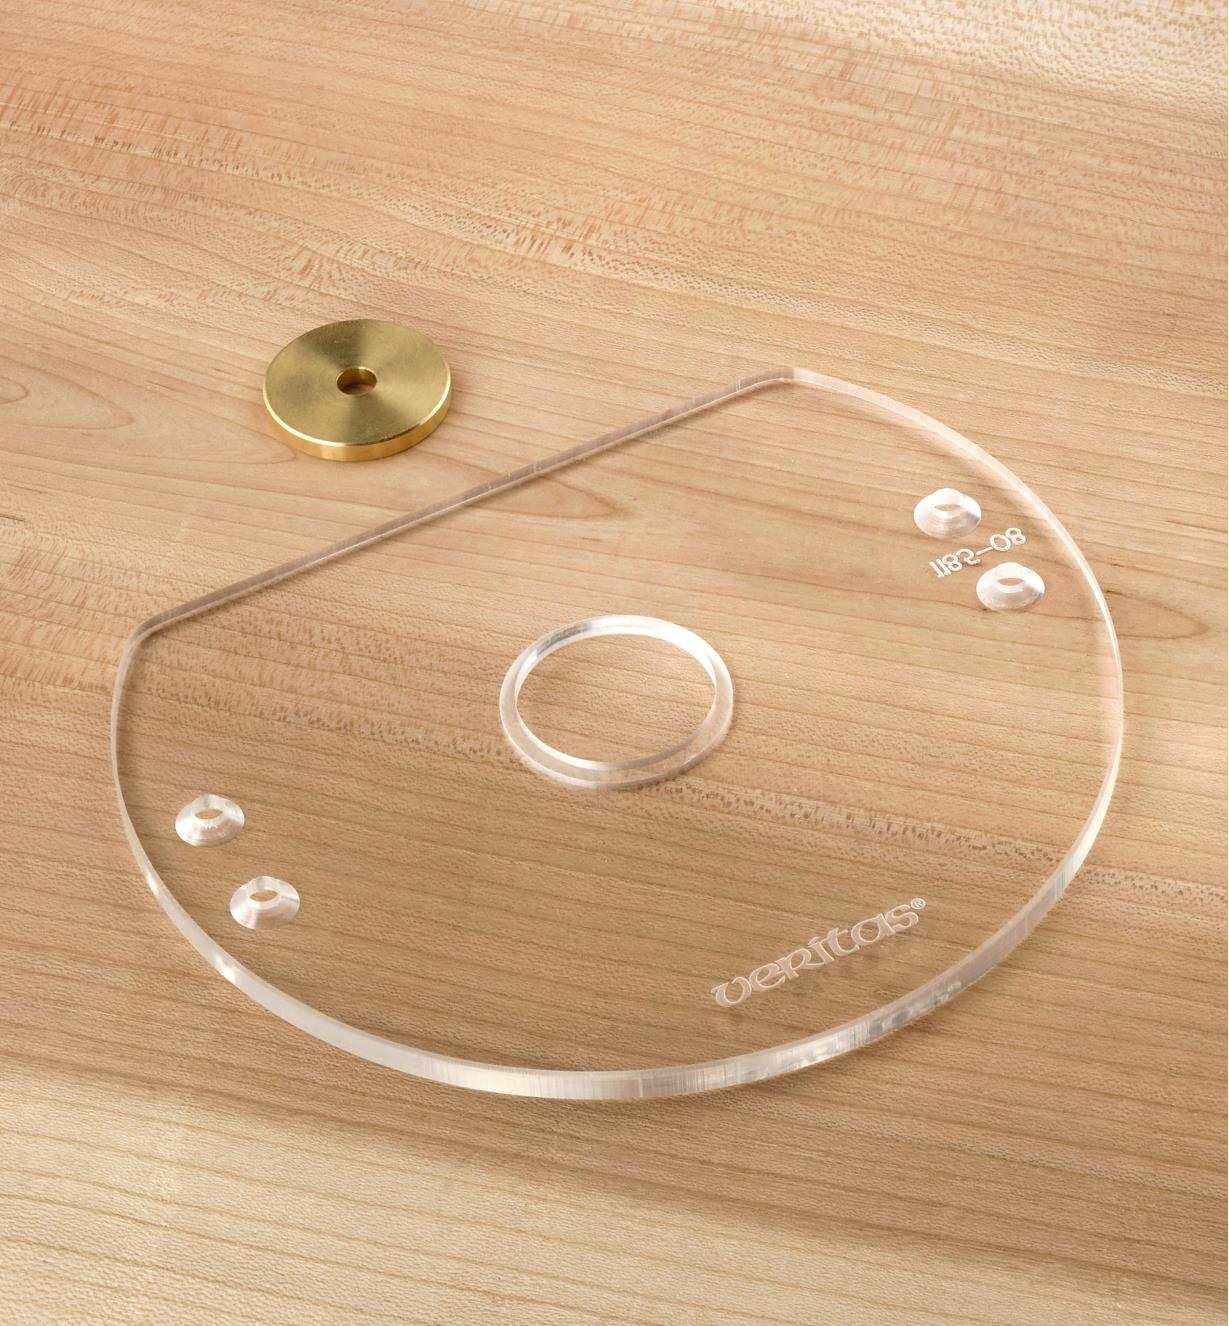 05J6609 - Compact Router Base Plate, Blank